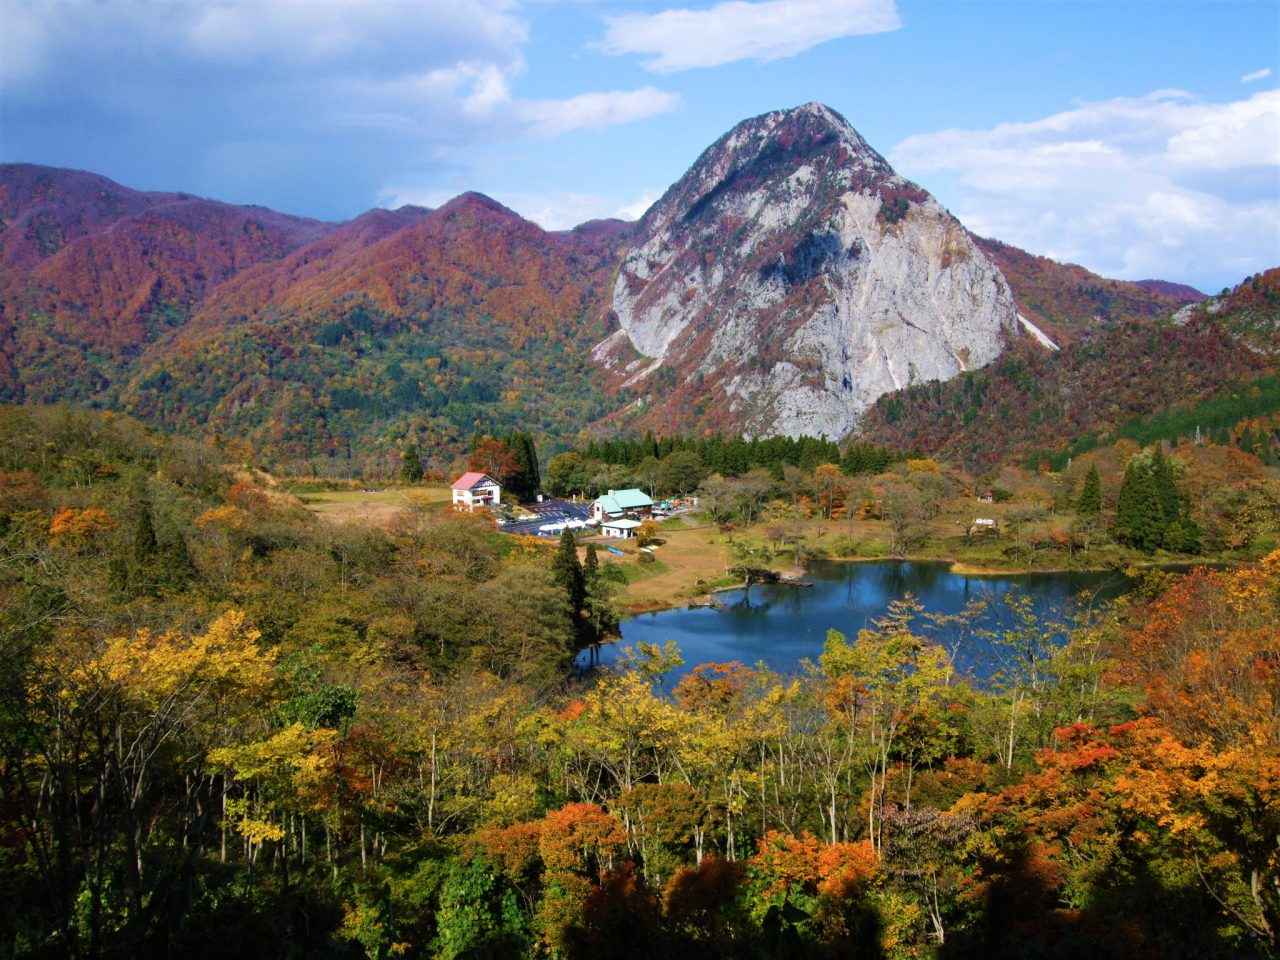 Takanami-no-Ike Pond and Mt. Myojo in Autumn